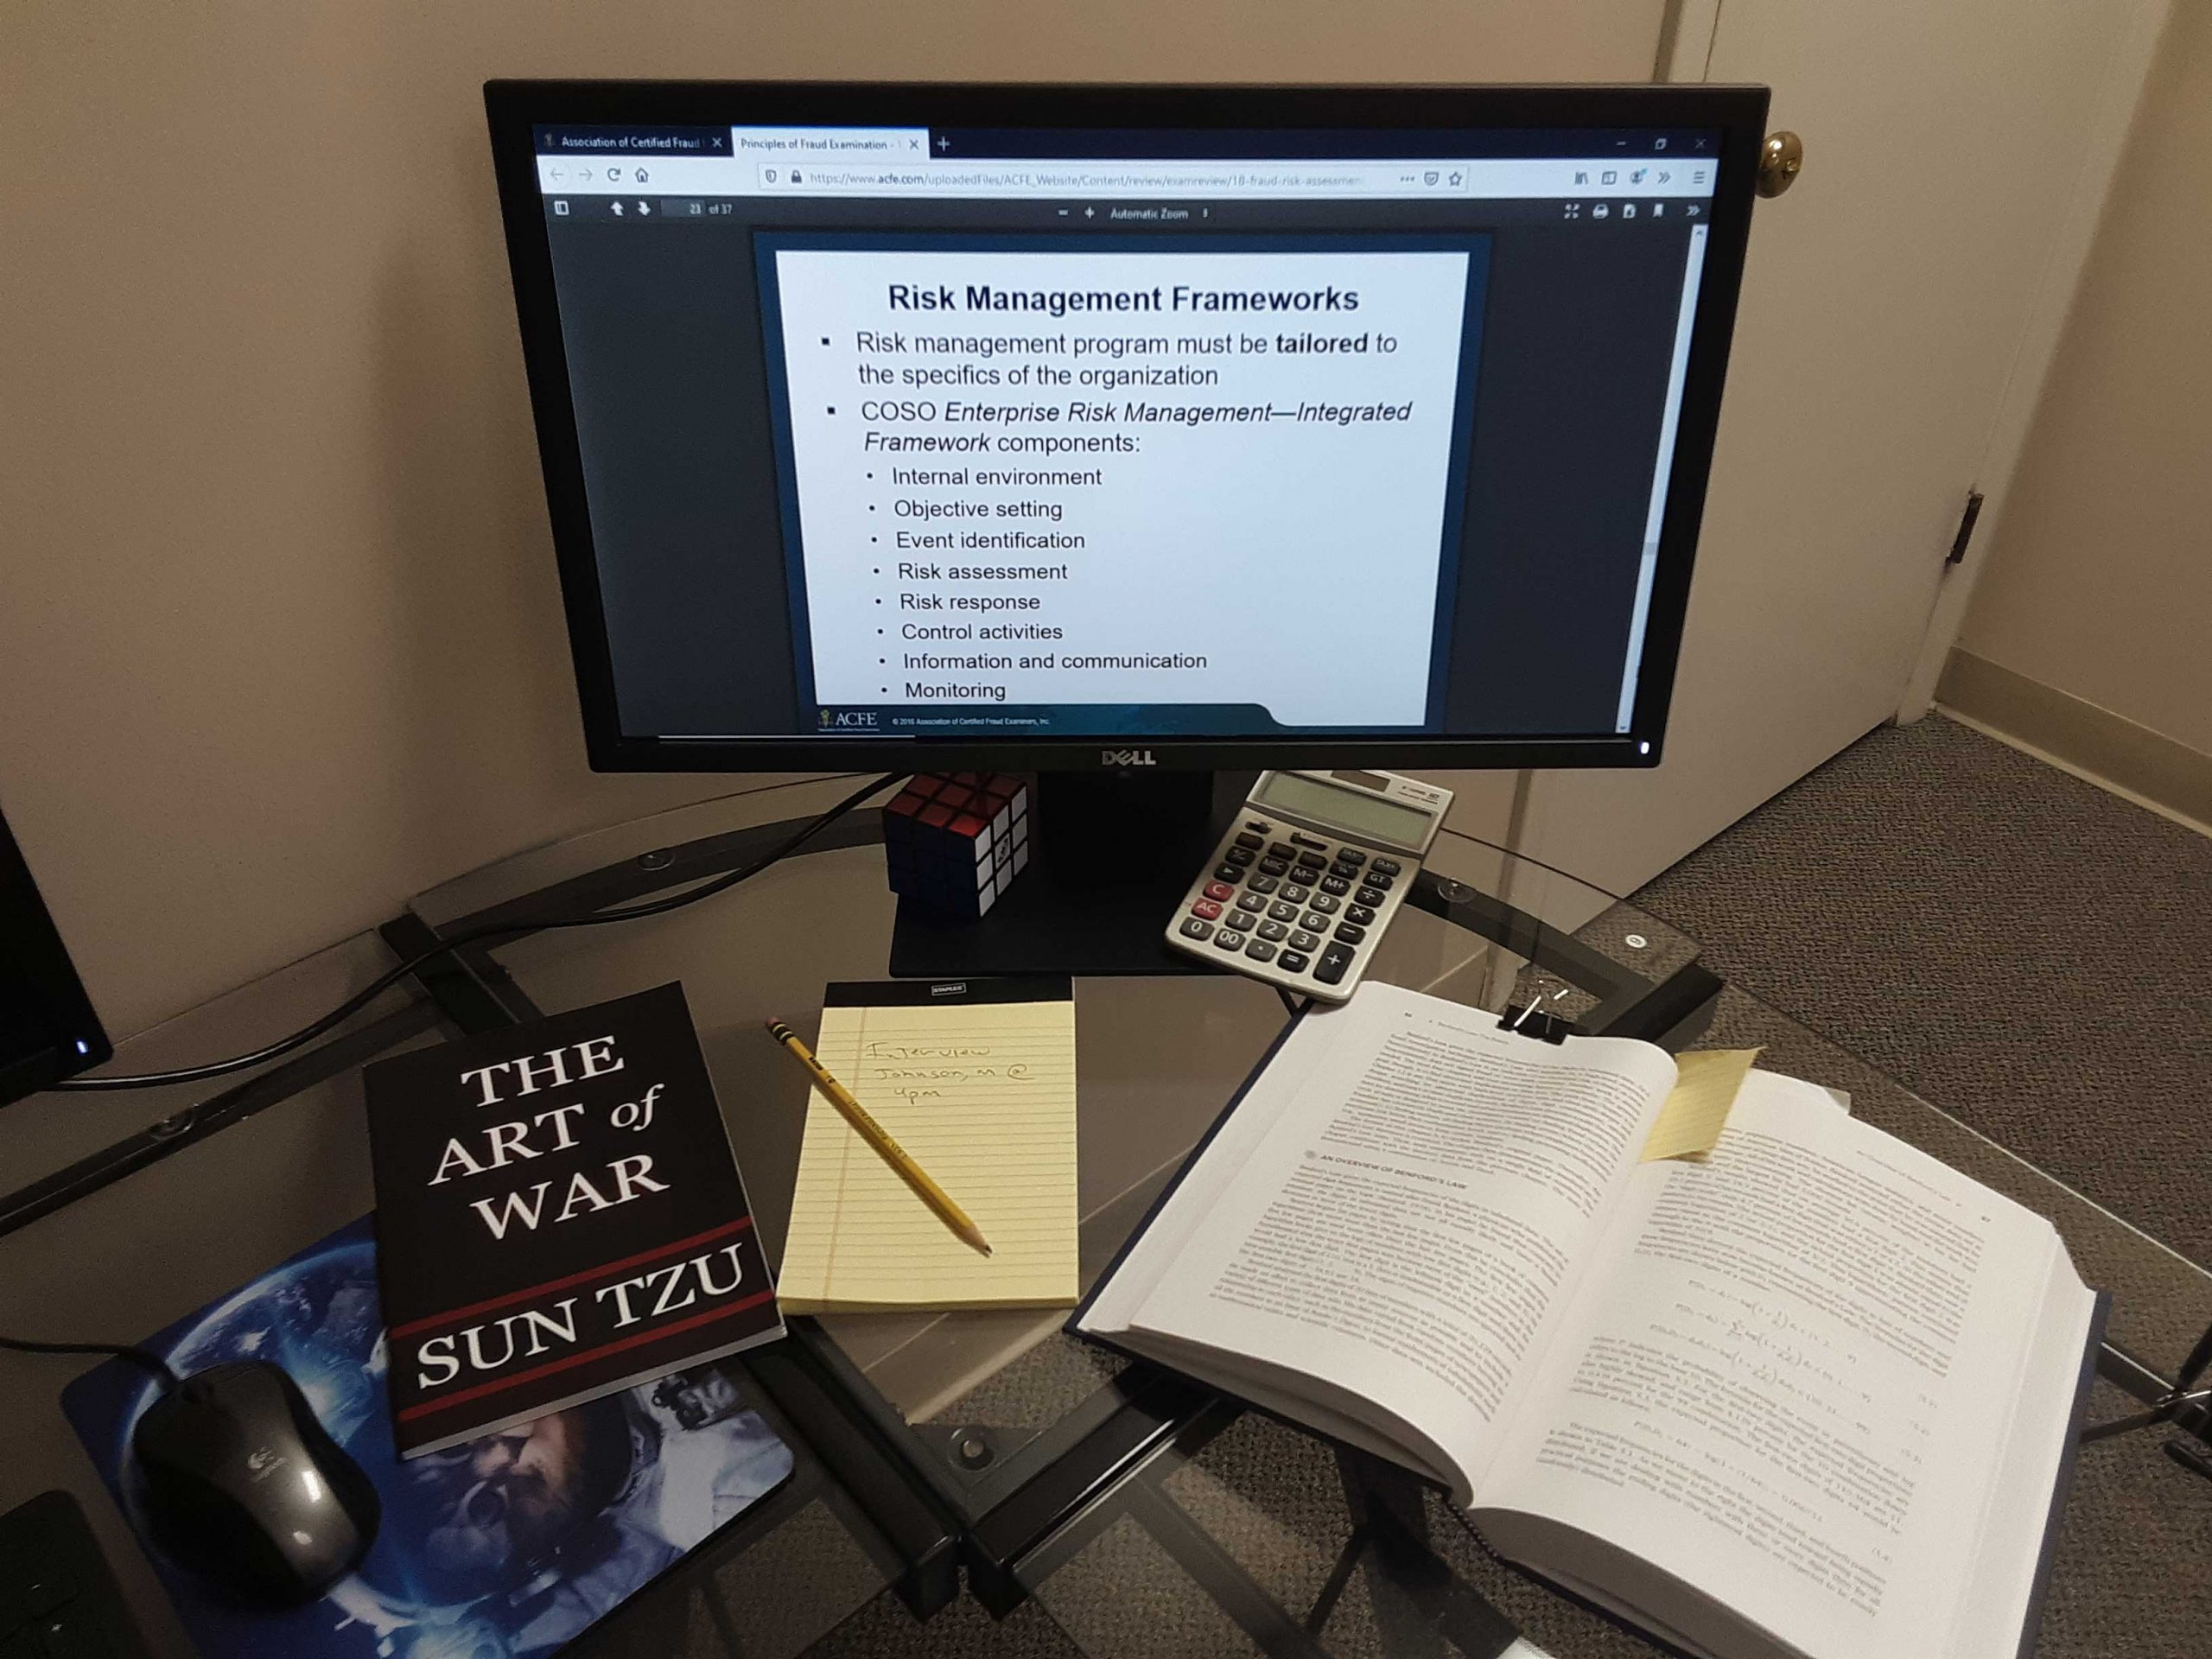 Fraud prevention manual open on a glass desk. A computer monitor in the background with fraud website and the book The Art of War sits to the side.